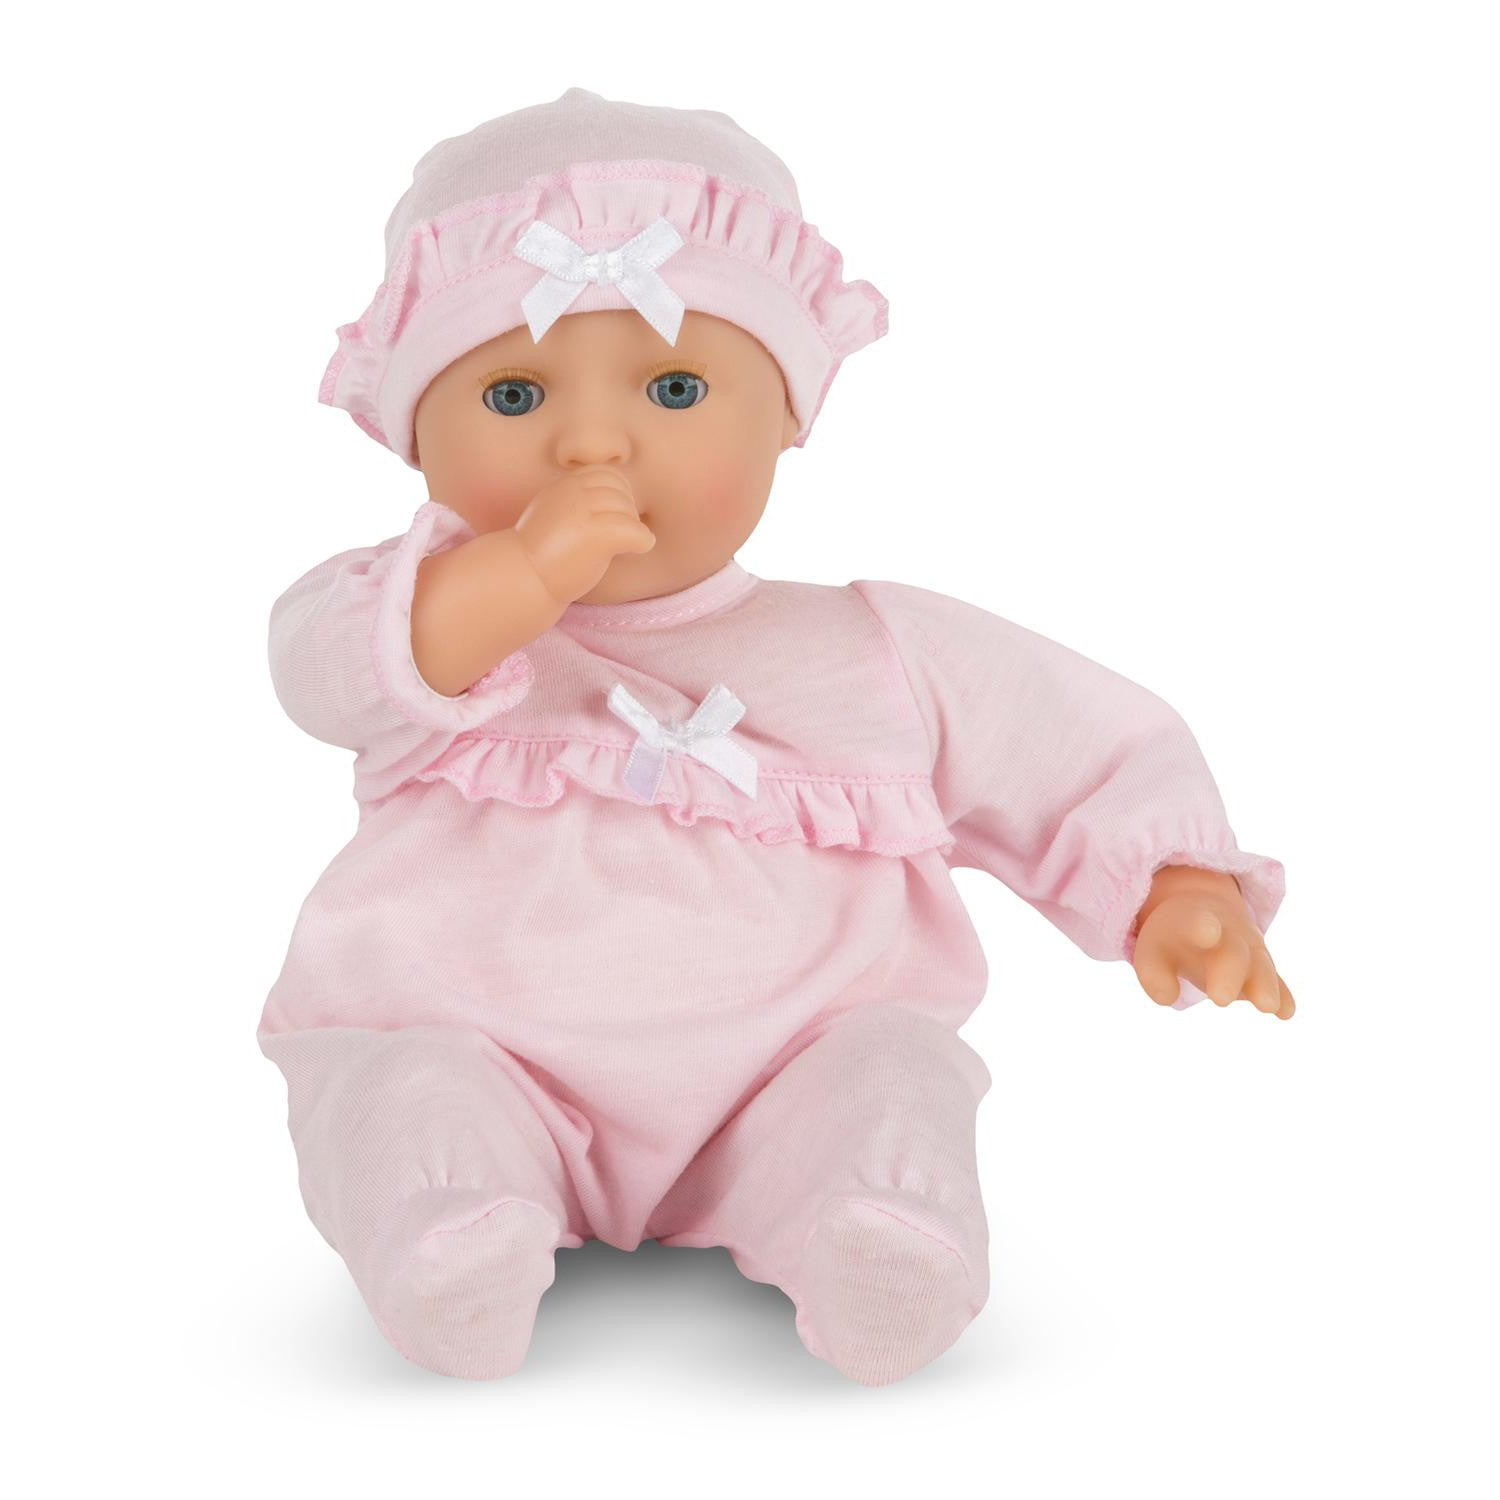 "Jenna 12"" Baby Doll by Melissa & Doug - Little Citizens Boutique  - 1"